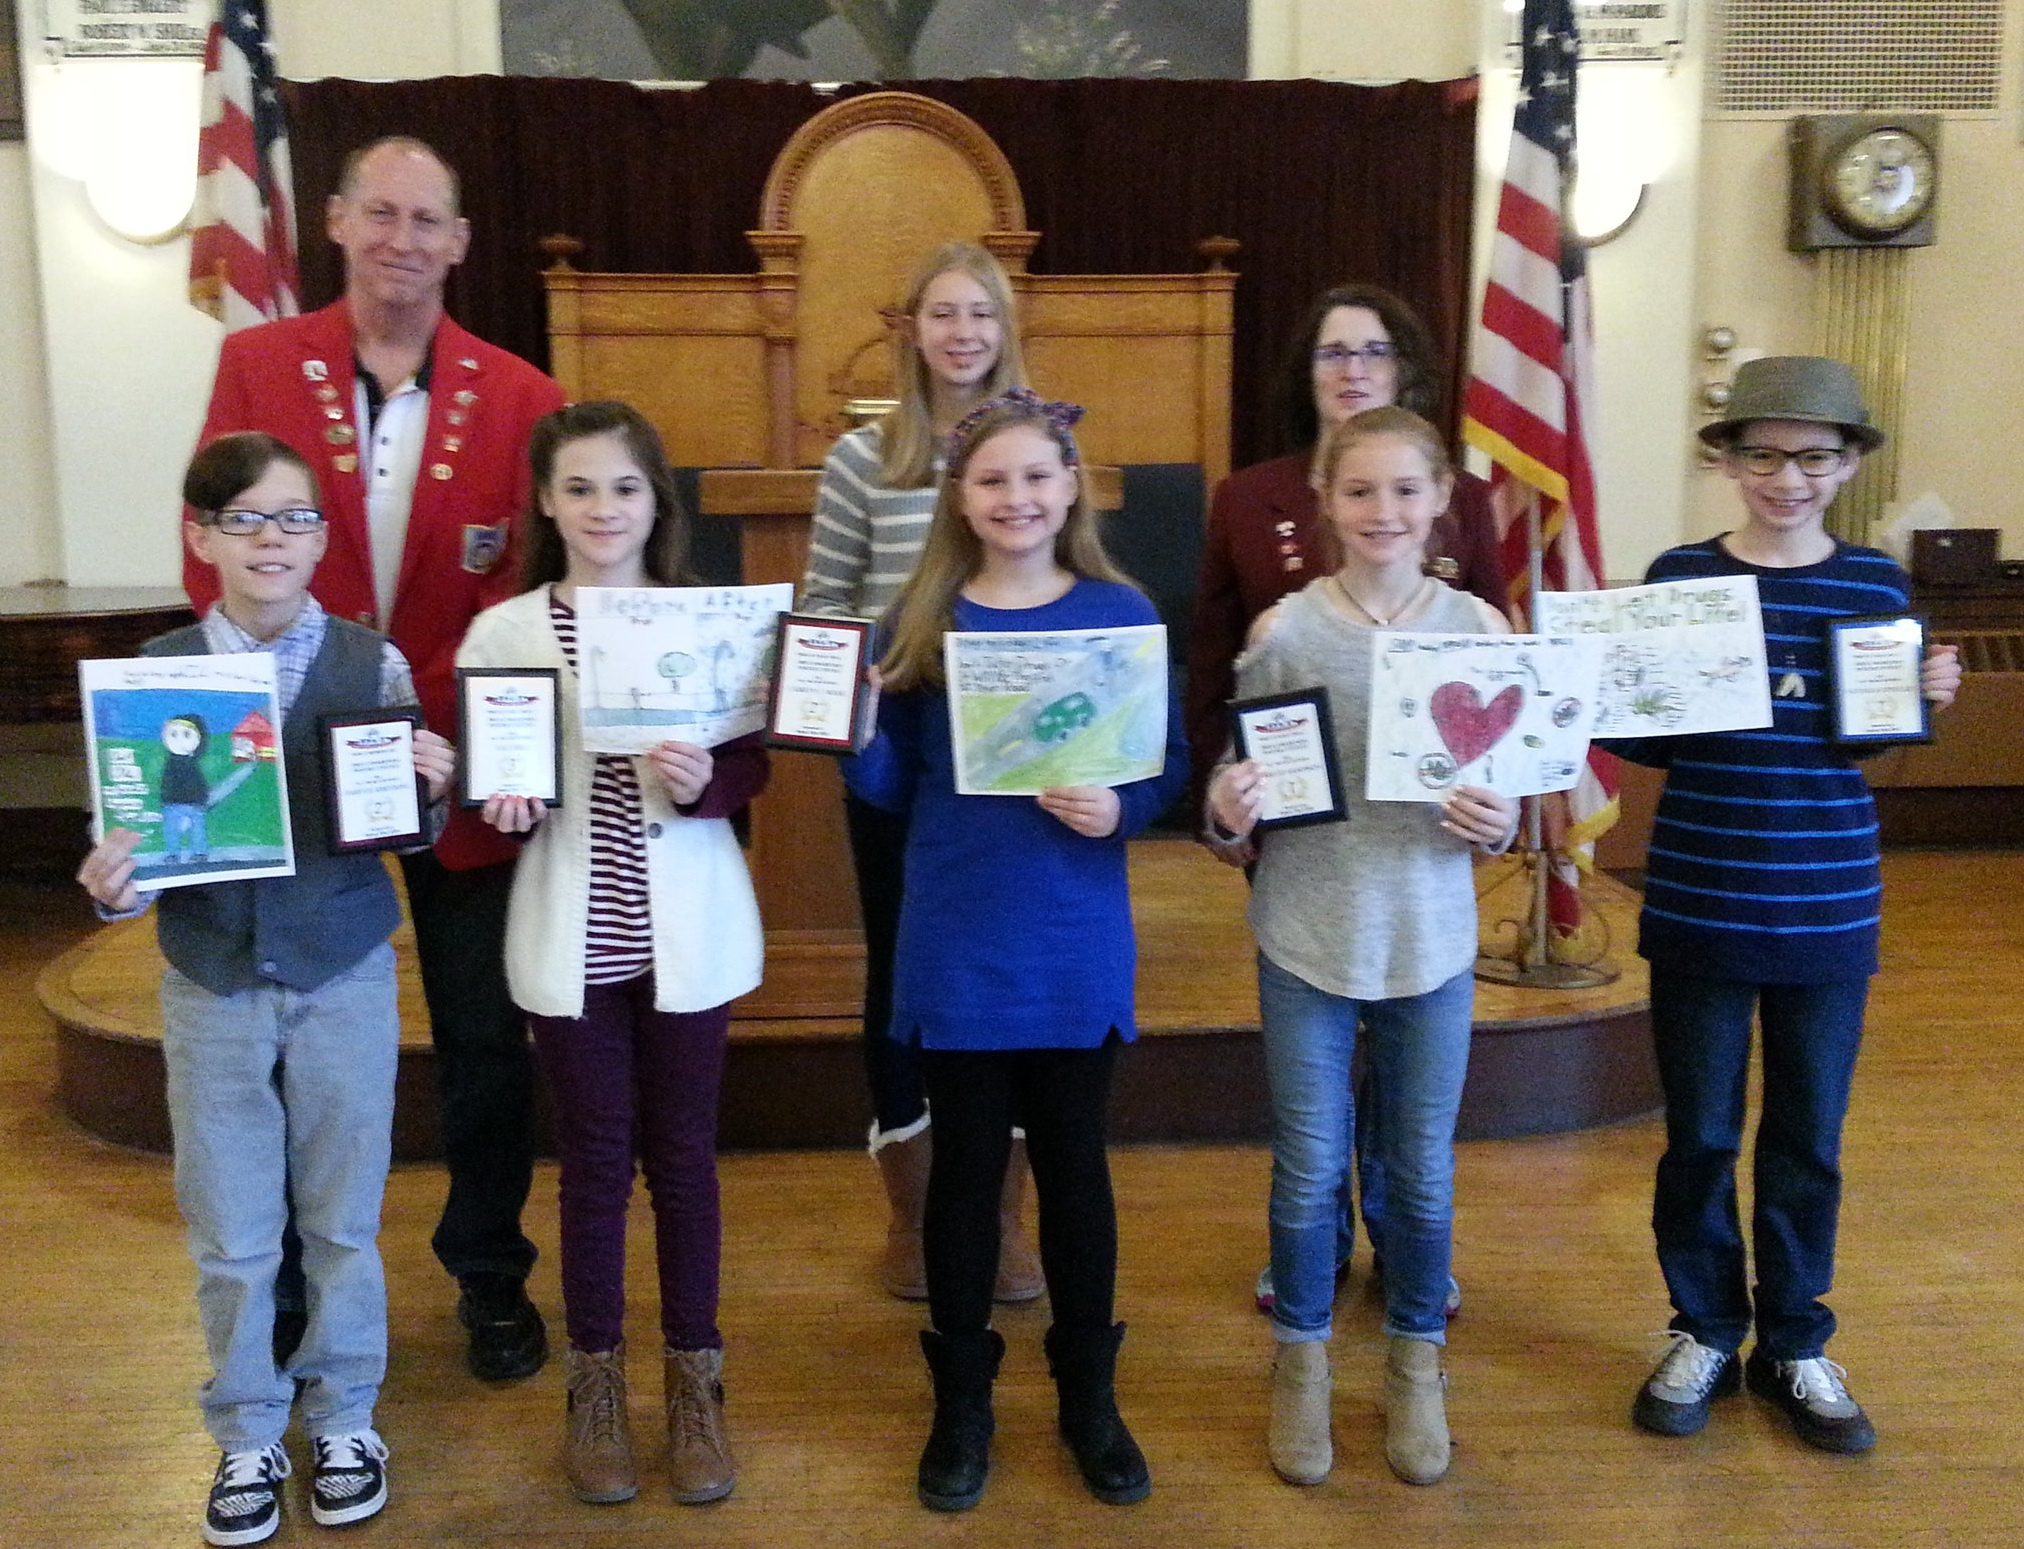 Pictured front row Darryck Armstrong -2nd, Karlie Sampson-1st, Camryn Mark -2nd Lily Hill-3rd, Nathan Fowler-1st and not pictured Jimmy Andres Miguel Francisco-3rd. Back row is Wayne Gorby, ER, the only Essay contestant Chloe Wilhelm 1st place and Kim Chapman, Loyal Knight, DAP Chairman.